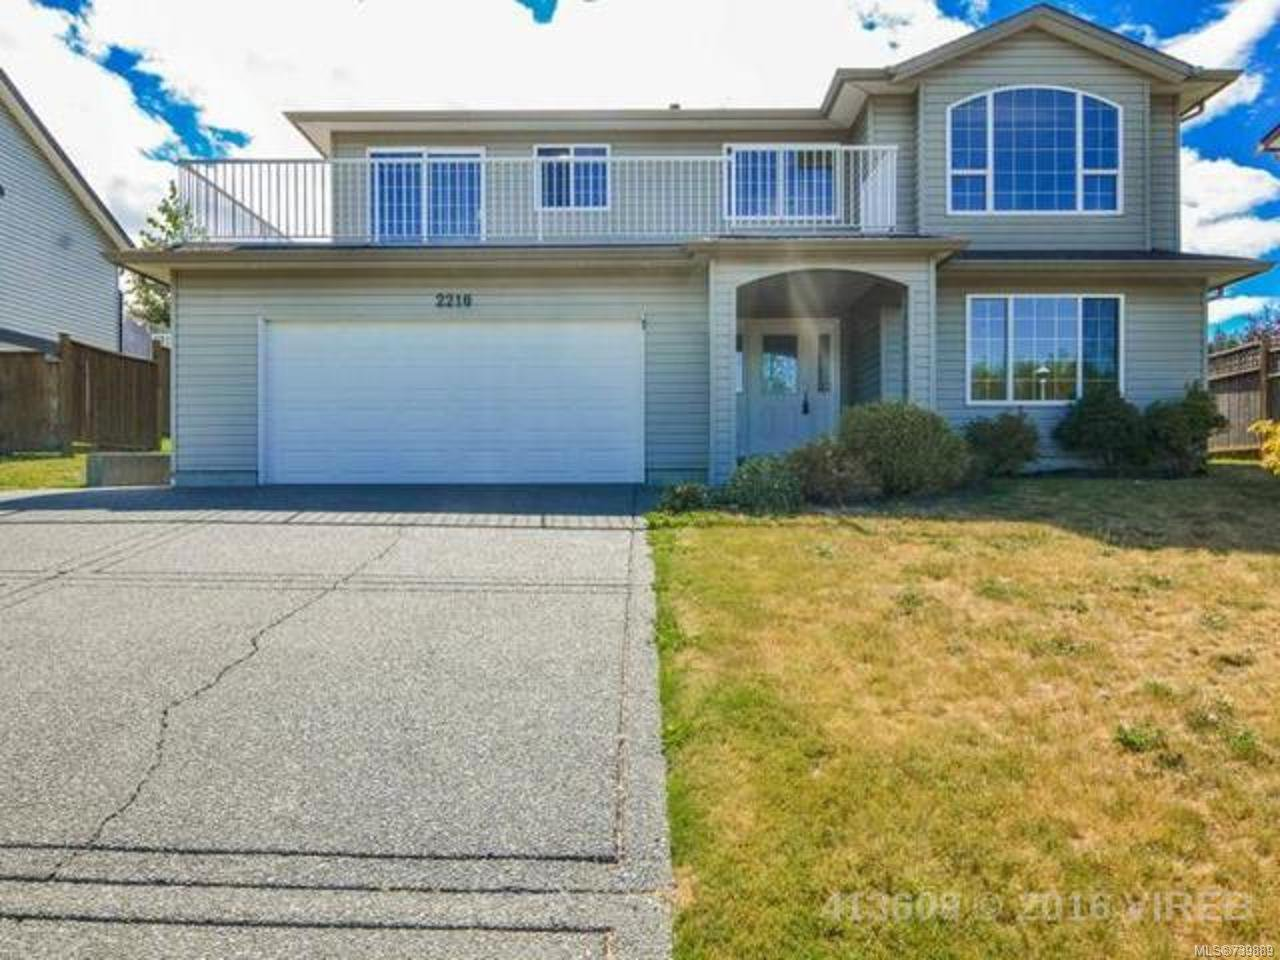 Main Photo: 2210 JOANNE DRIVE in CAMPBELL RIVER: CR Willow Point House for sale (Campbell River)  : MLS®# 739889